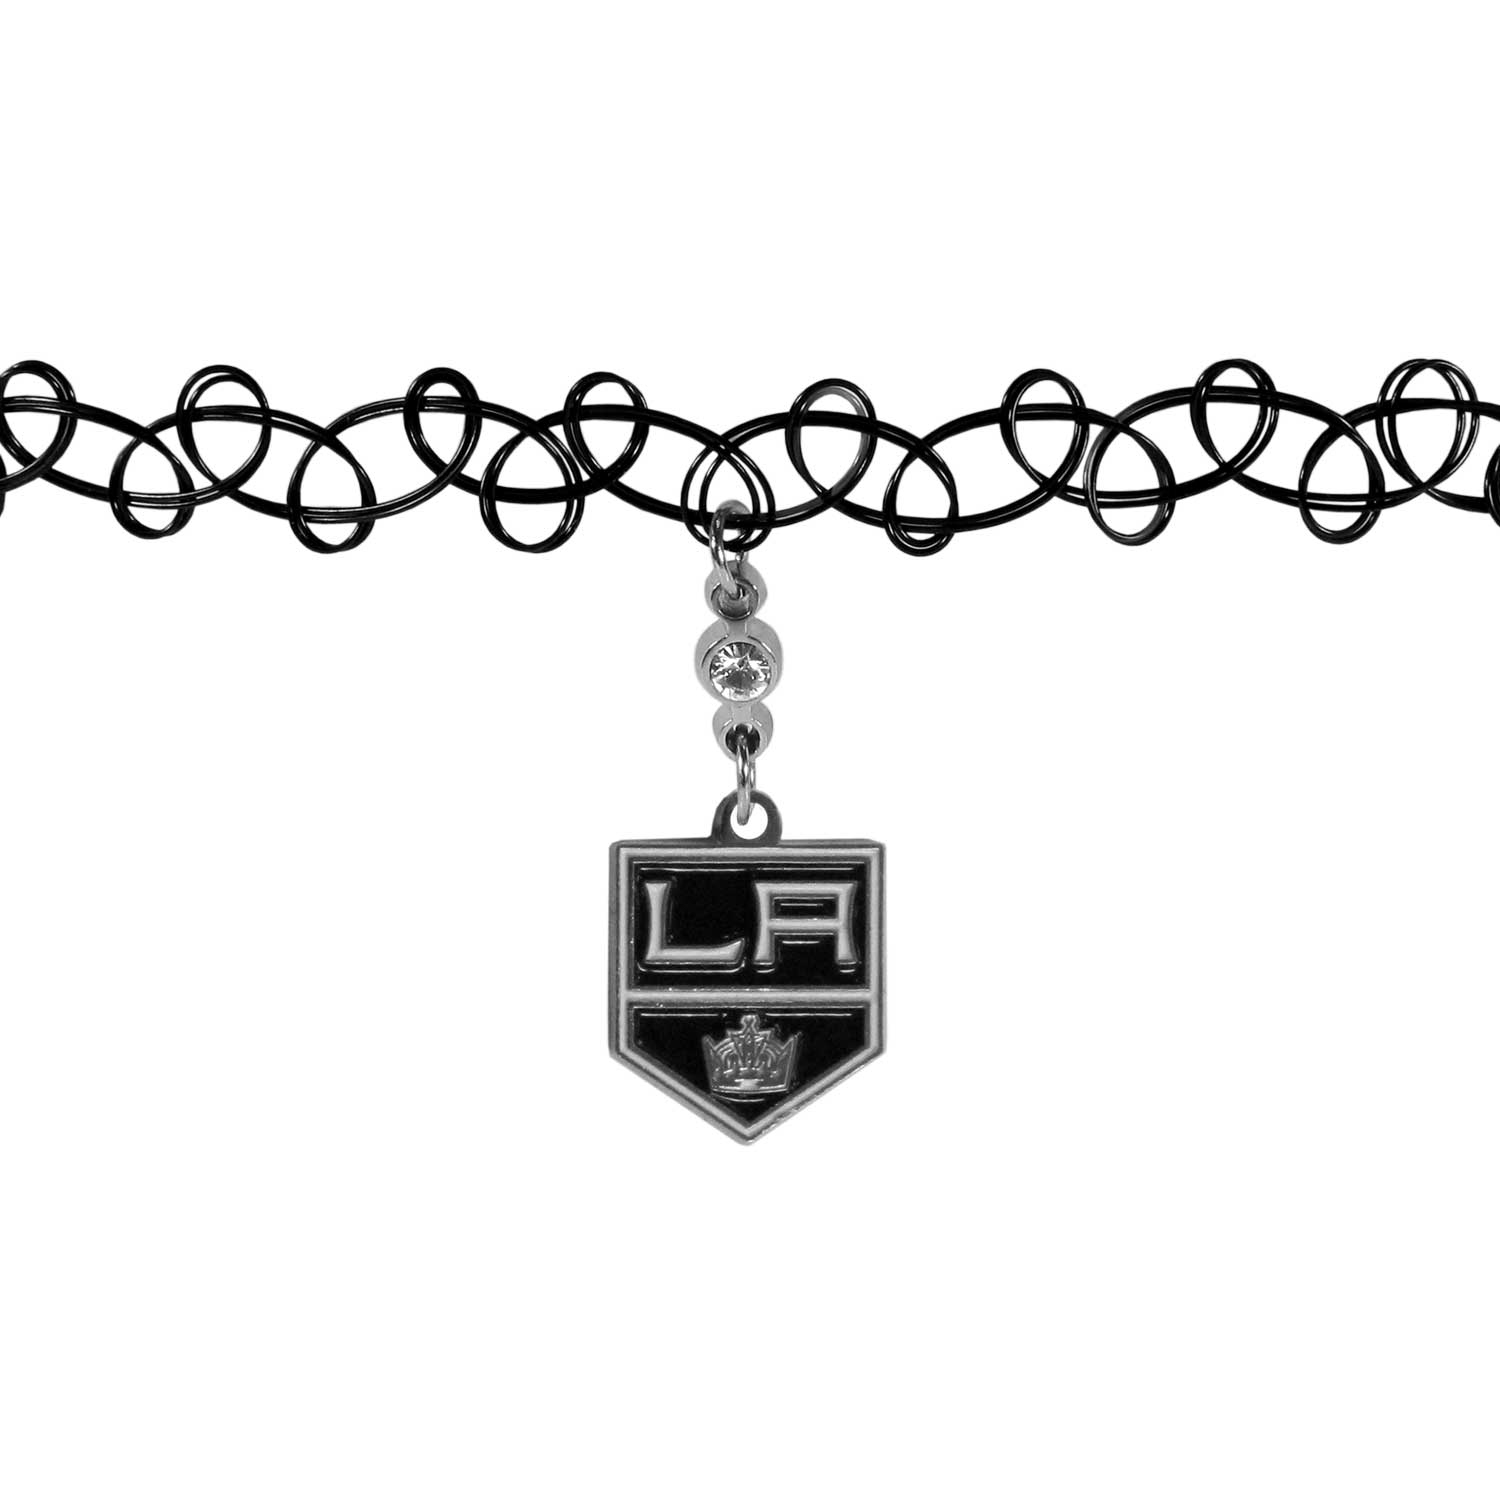 Los Angeles Kings® Knotted Choker - This retro, knotted choker is a cool and unique piece of fan jewelry. The tattoo style choker features a high polish Los Angeles Kings® charm with rhinestone accents.